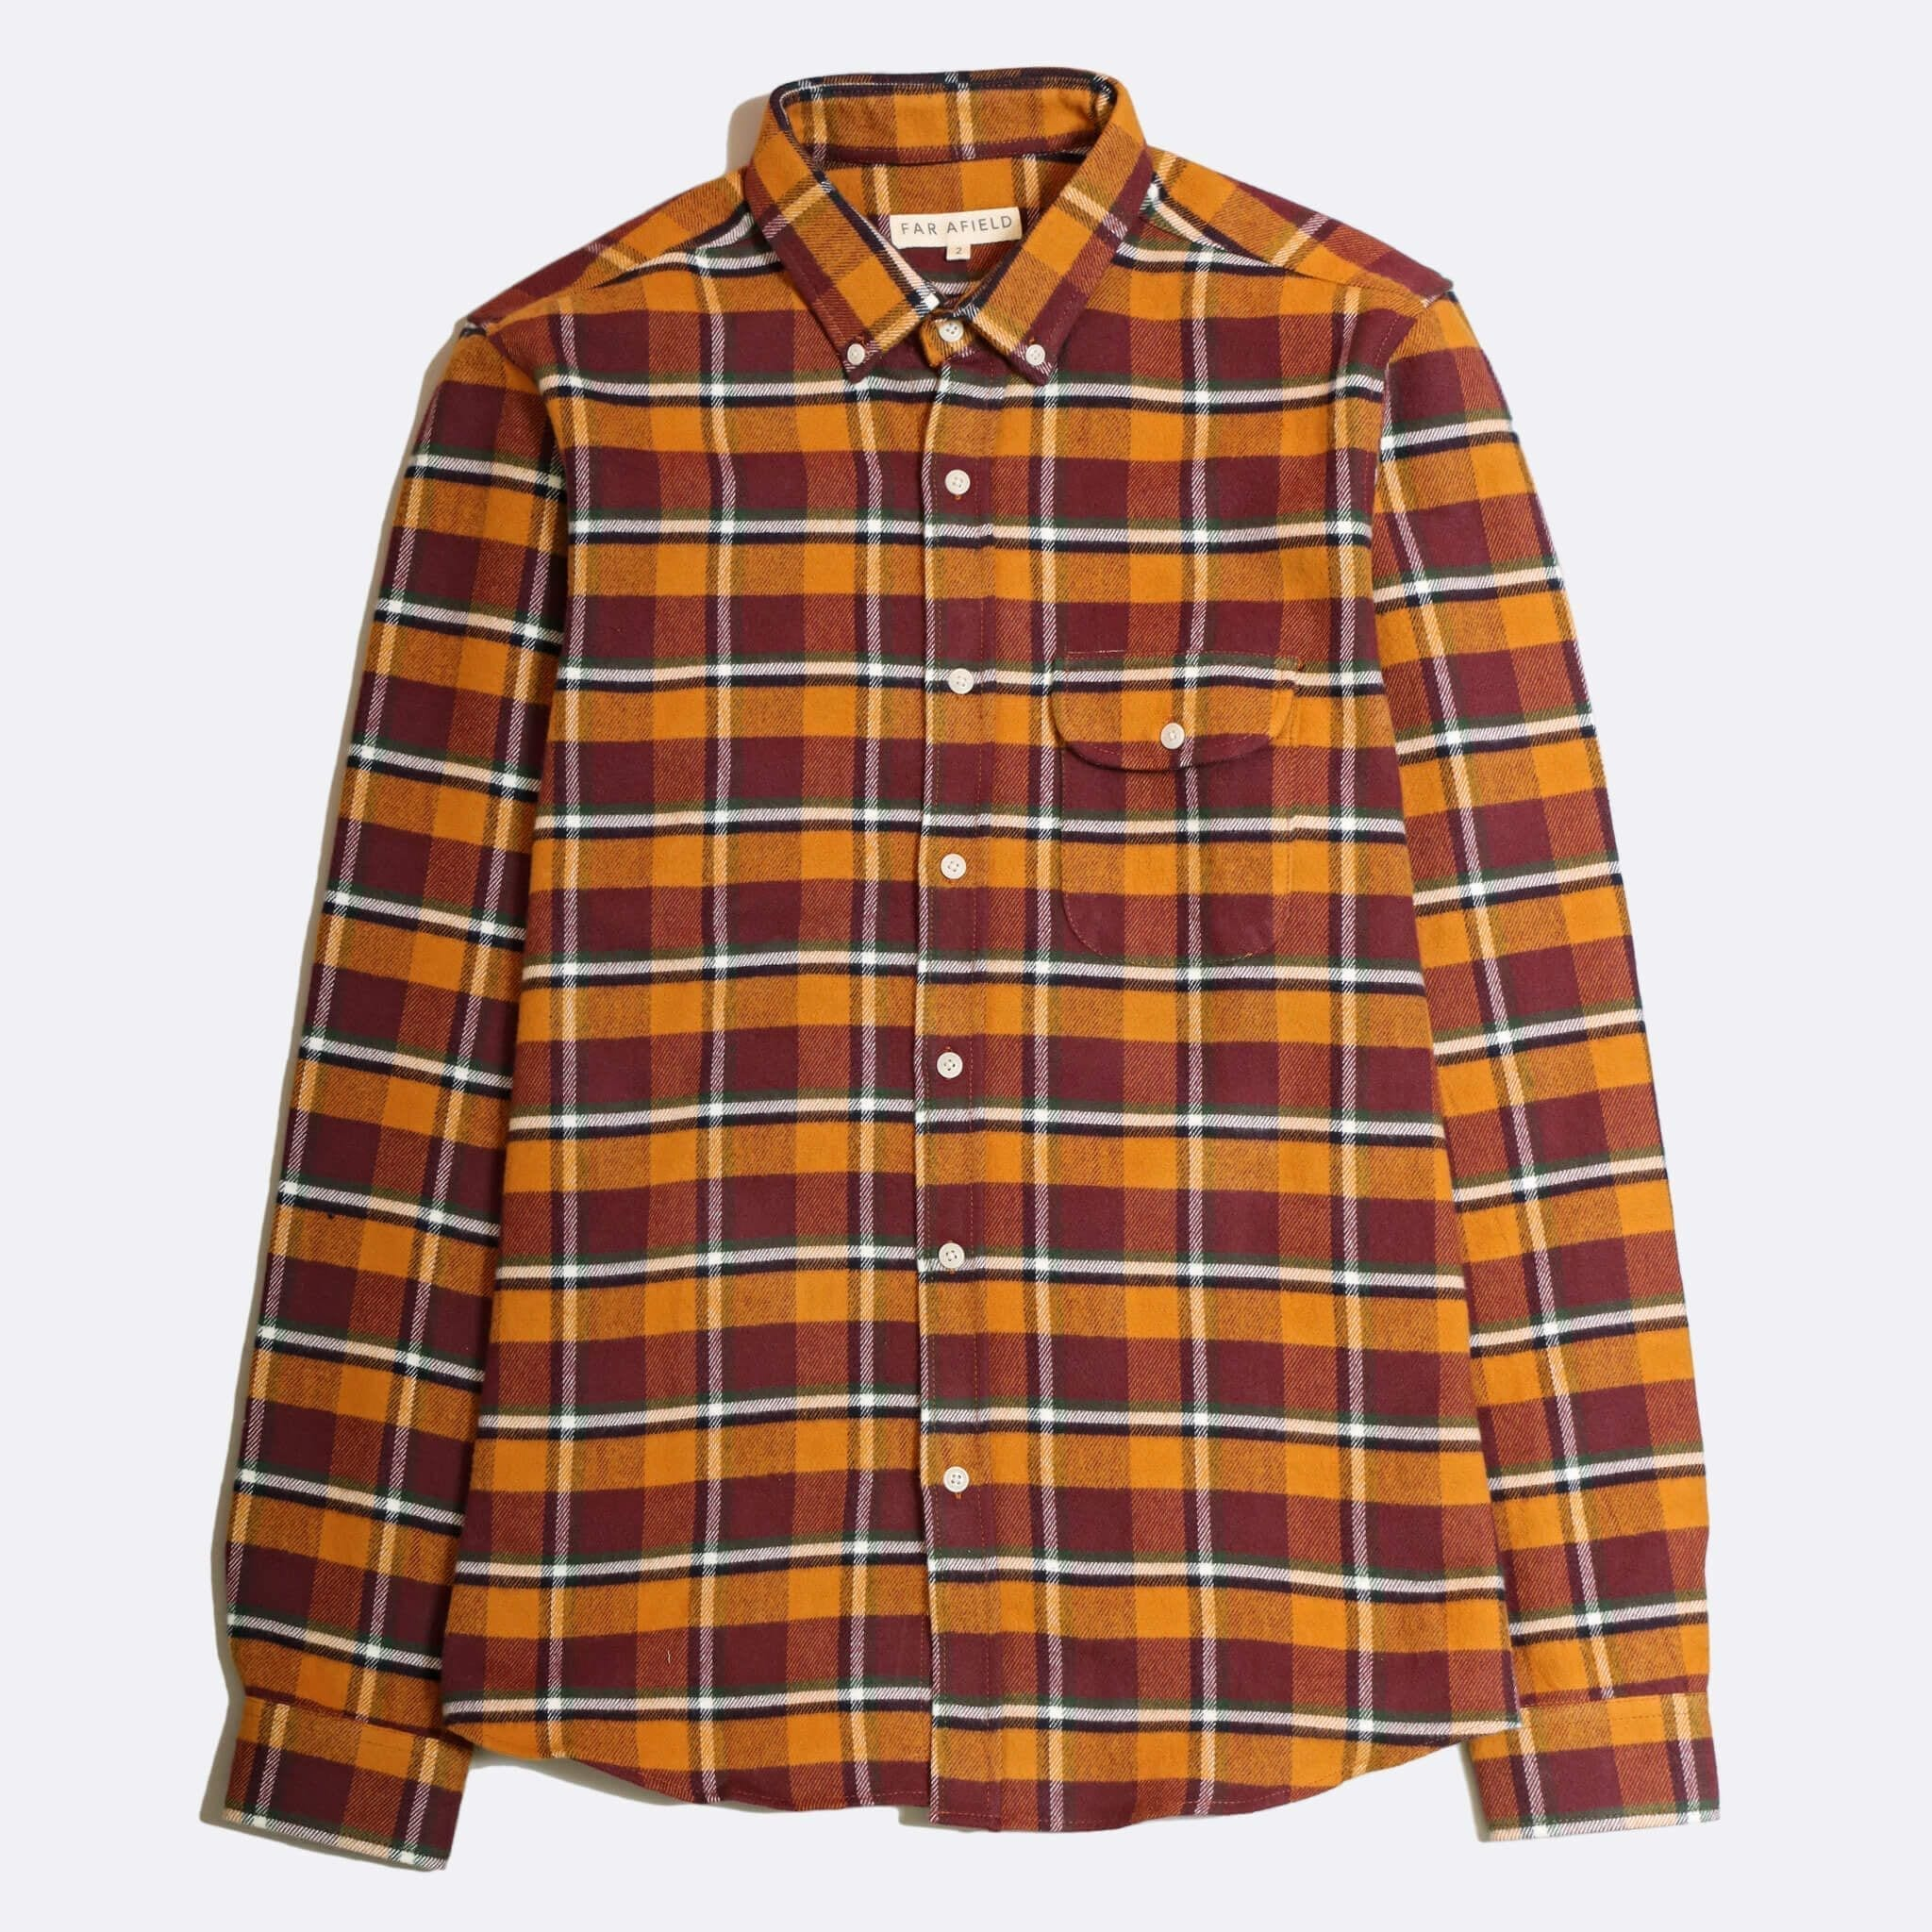 Far Afield Larry Long Sleeve Shirt a Omsk Check BCI Cotton Fabric/Cotton Flannel Work Lumberjack Check Casual